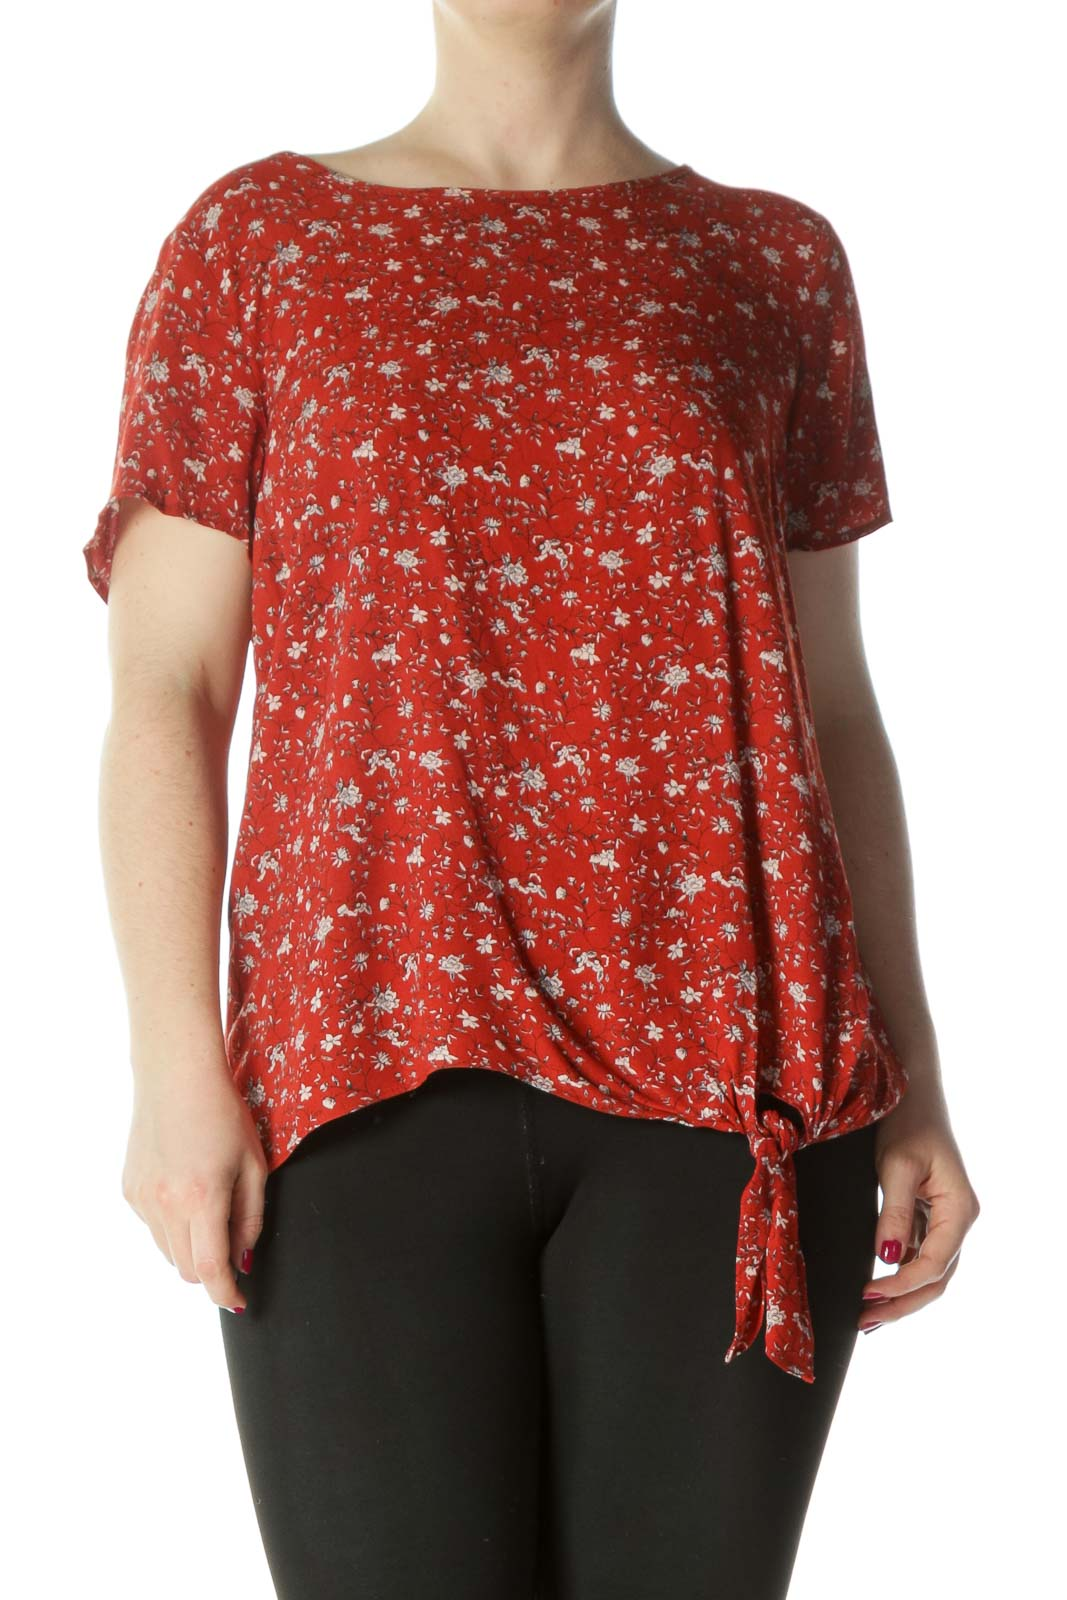 Orange/Cream Floral-Print Tie-Front Flared Top44